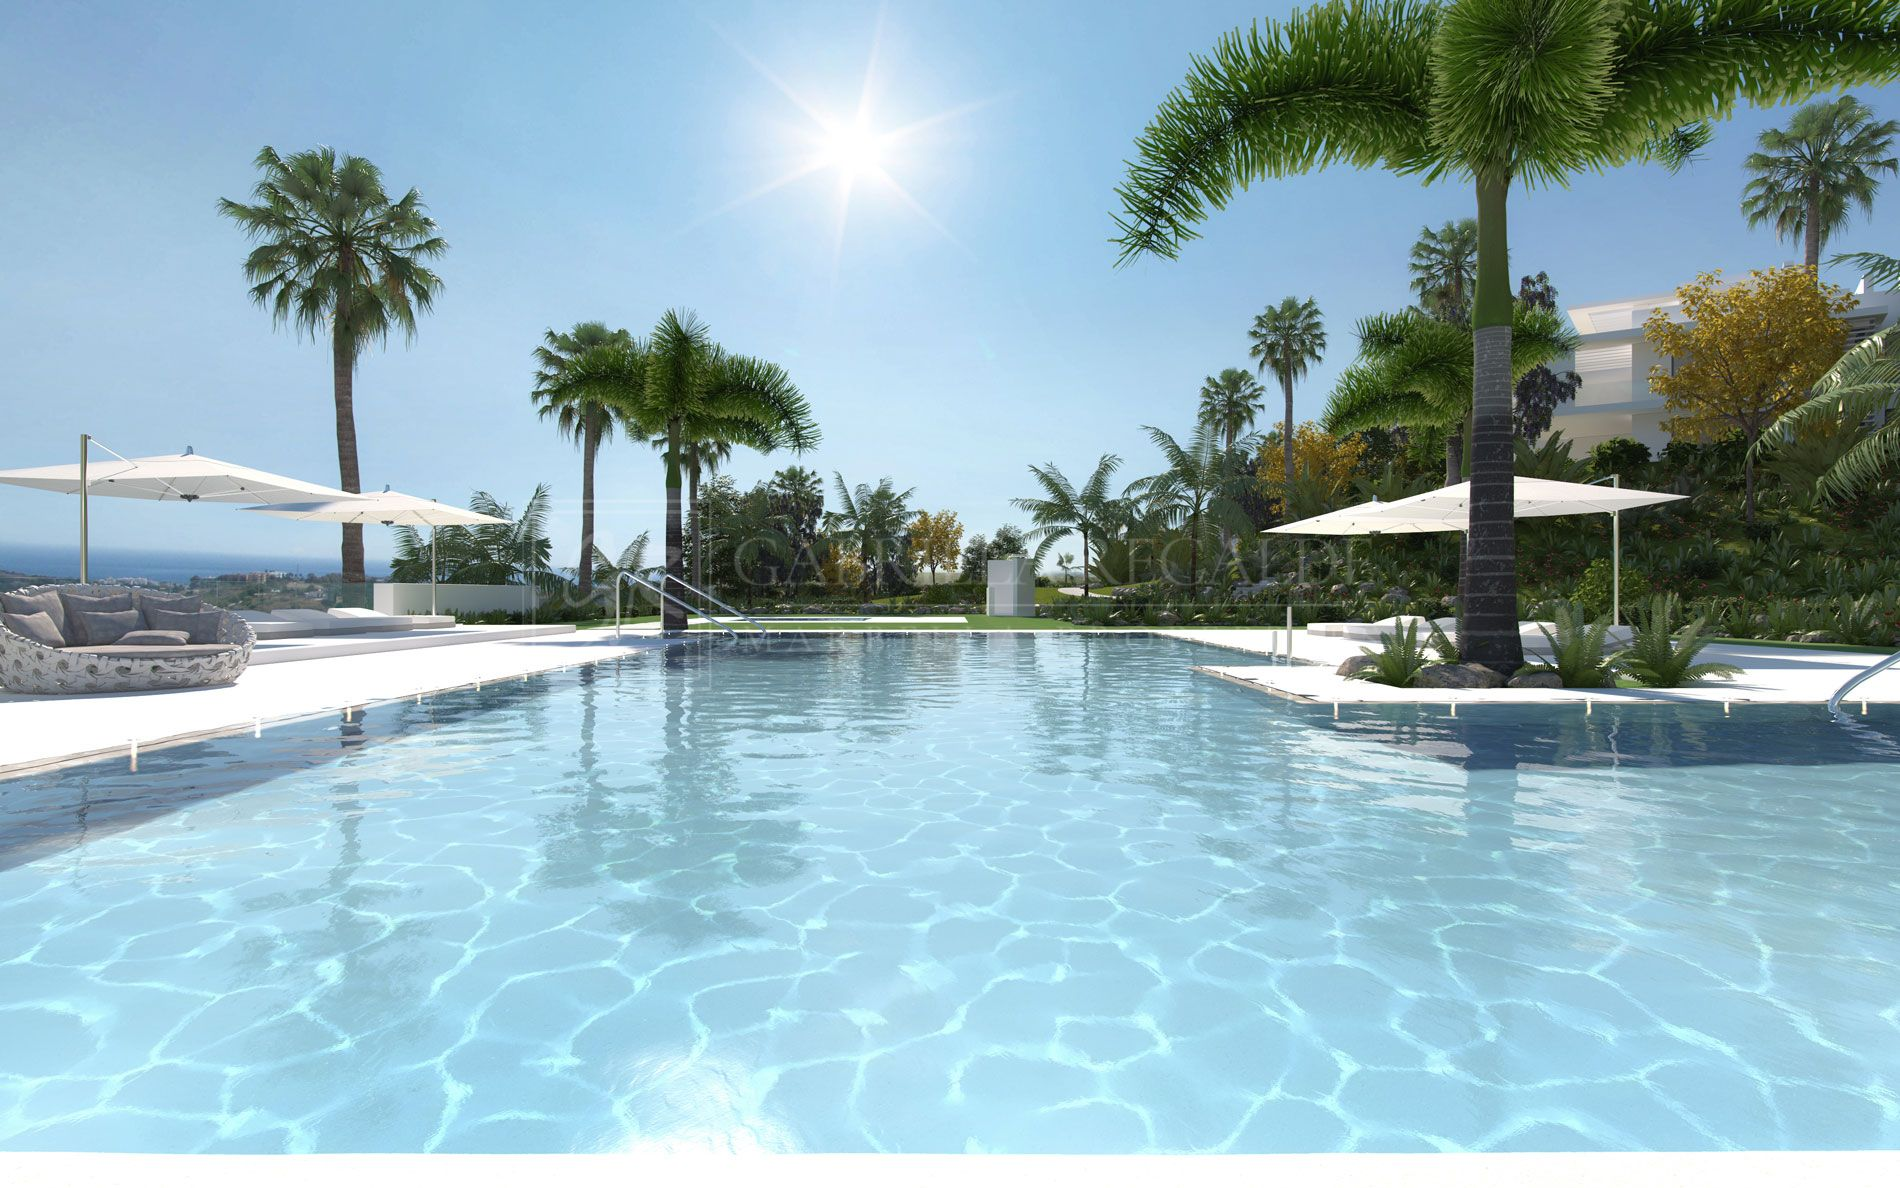 The First Crystal Lagoon is built in Europe-Casares Costa del Sol